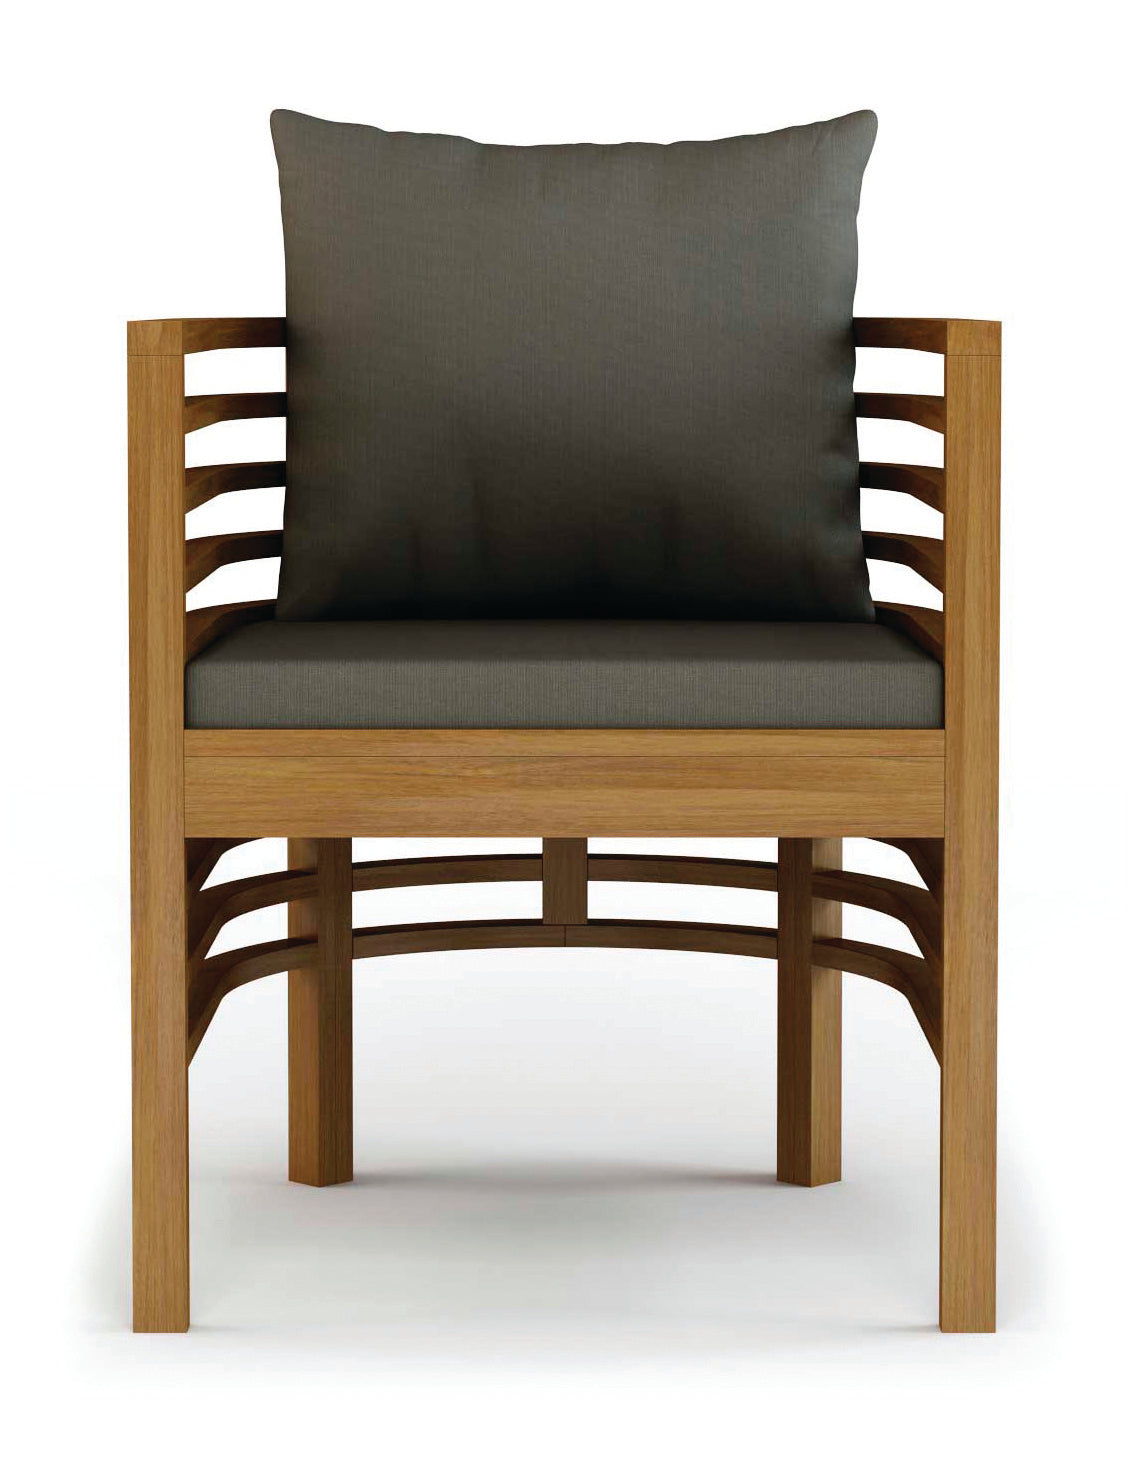 Spirals teak dining armchair by bd outdoor burke decor